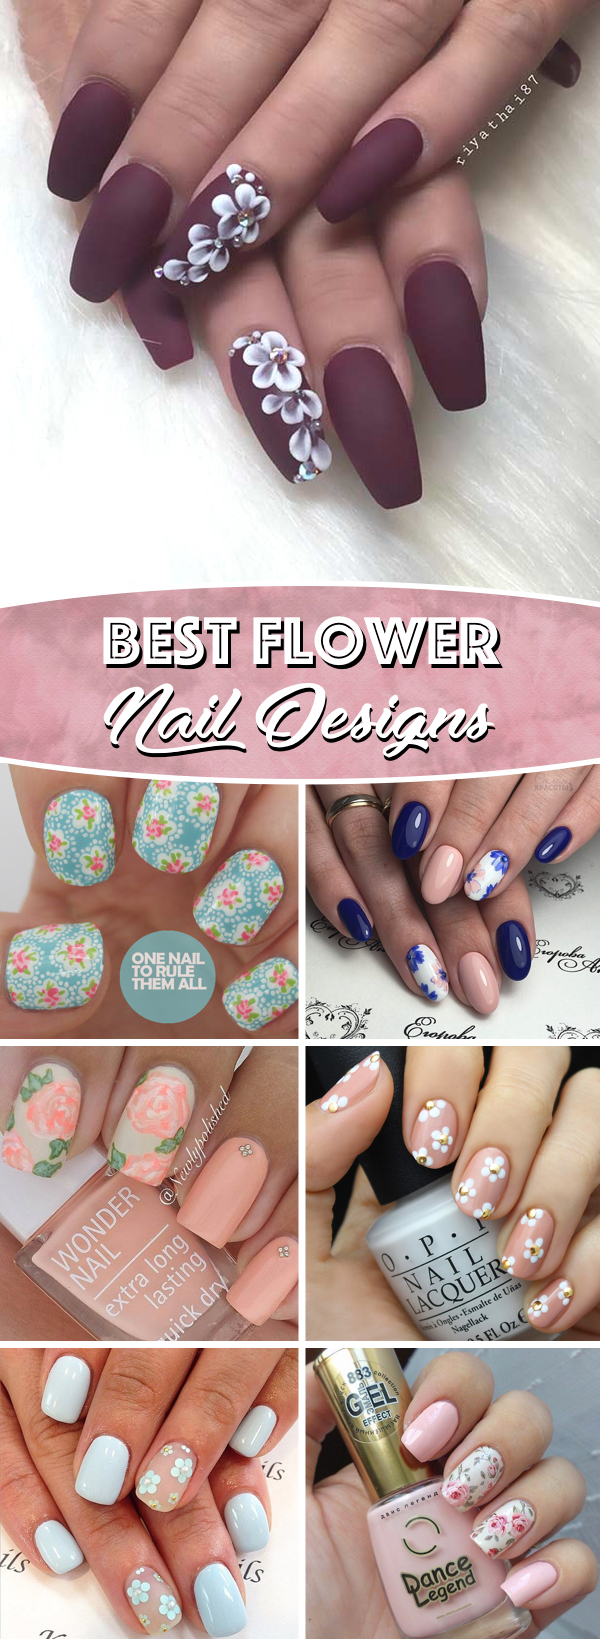 25 Delicate Flower Nail Designs Adding Lovely Blooms To Your Fingertips